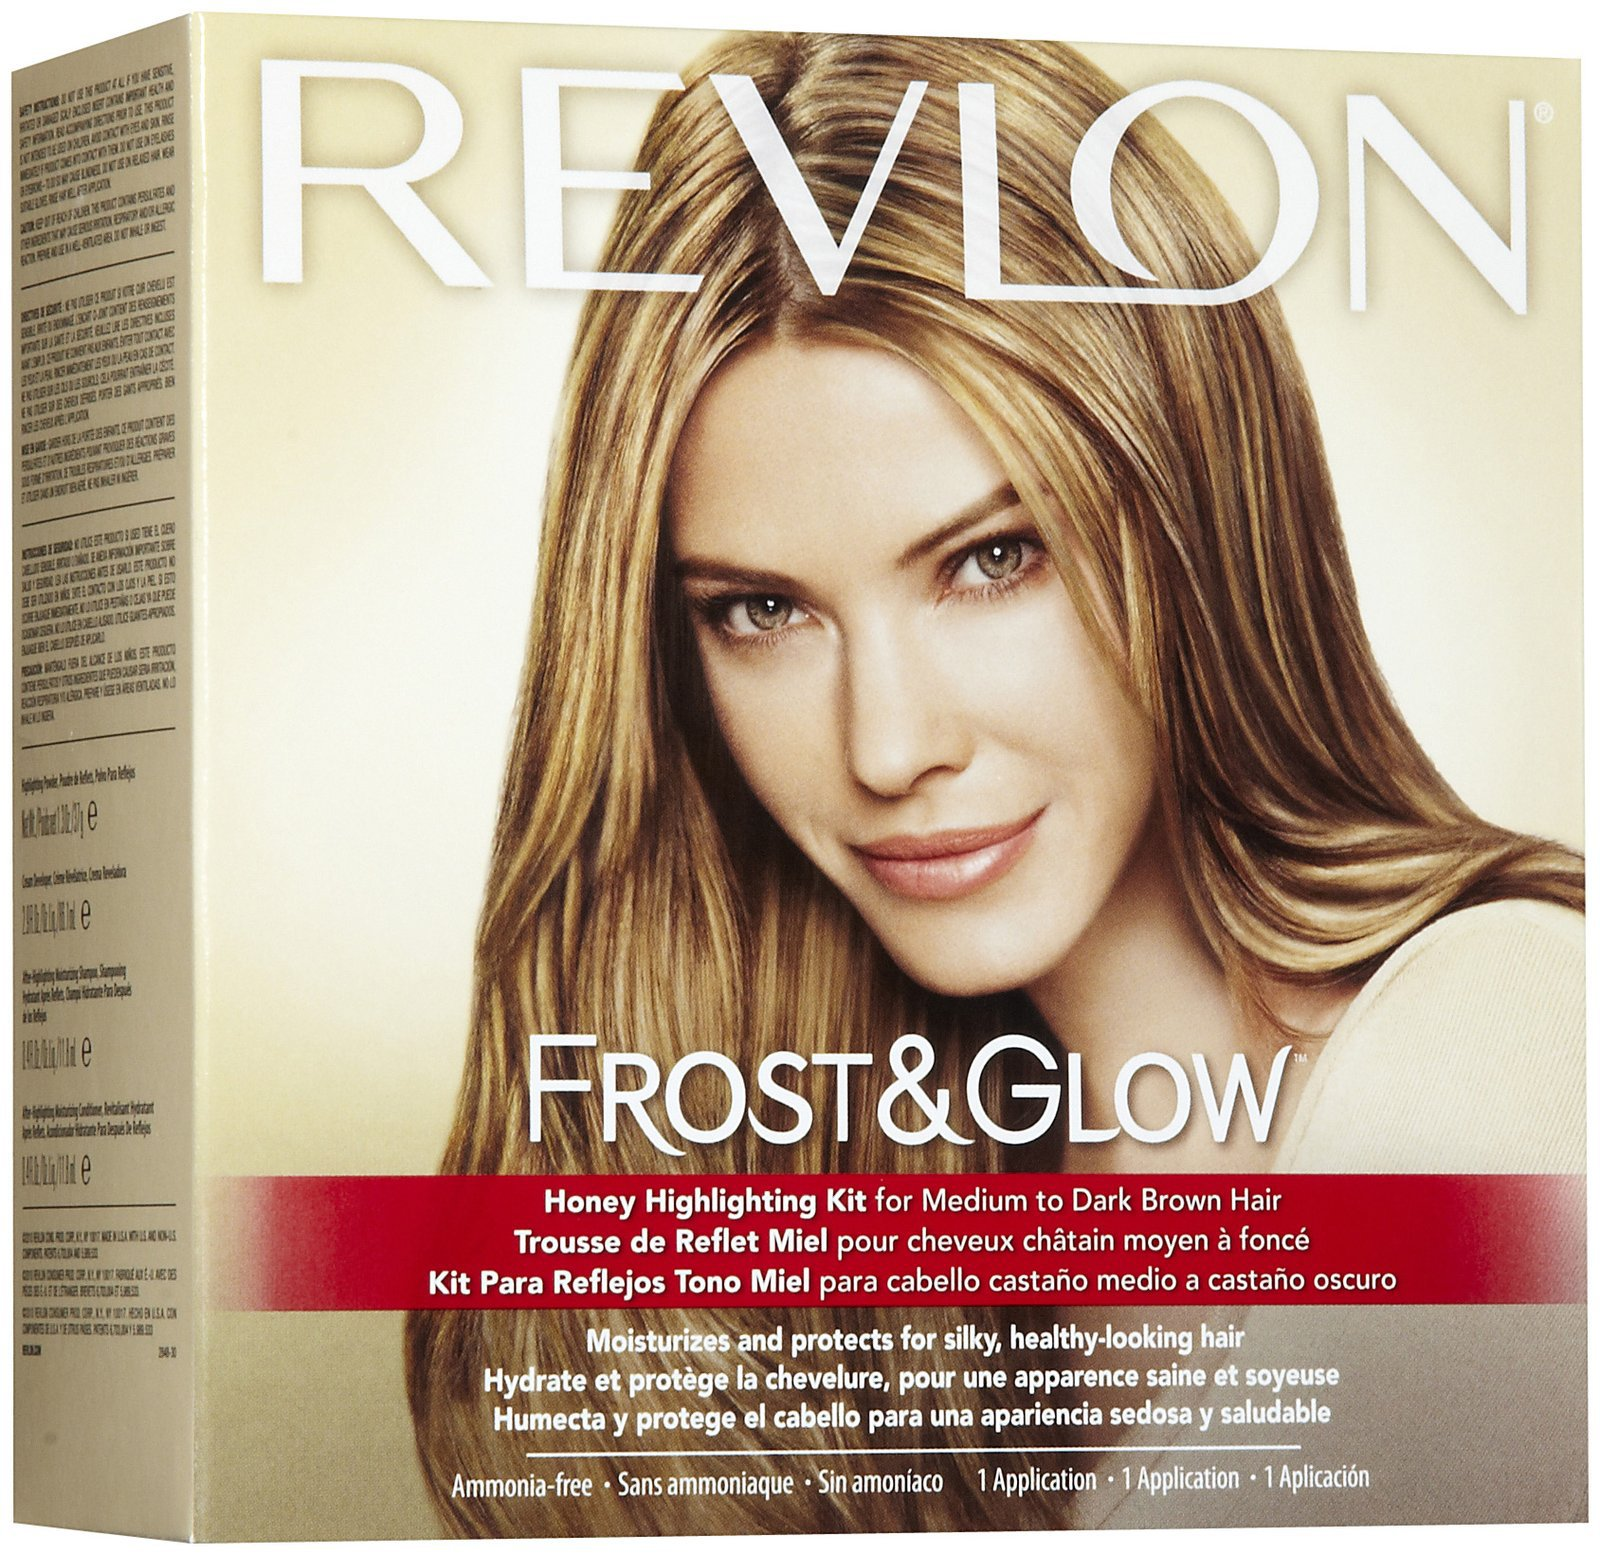 Revlon Frost And Glow Highlighting Kit Reviews In Hair Care